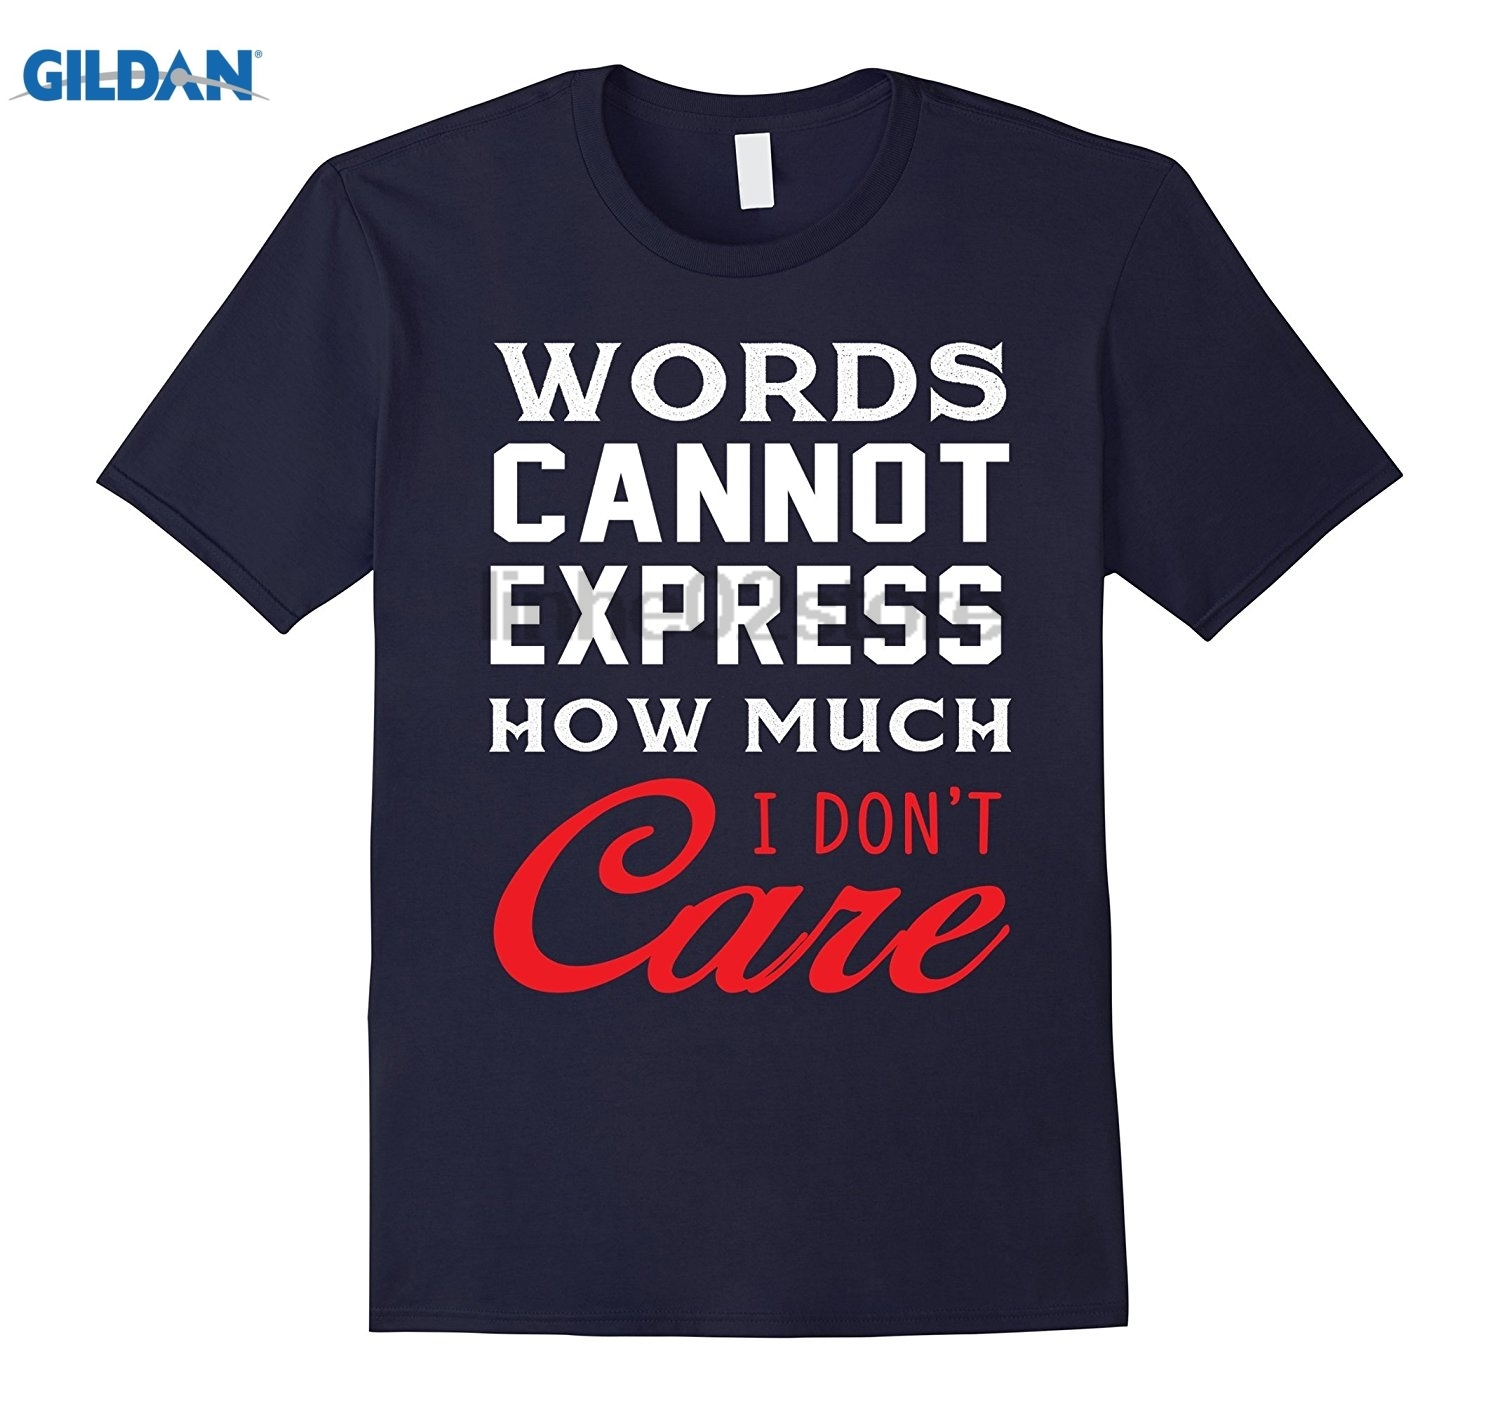 GILDAN Words Cannot Express How Much I Dont Care T-Shirt Womens T-shirt